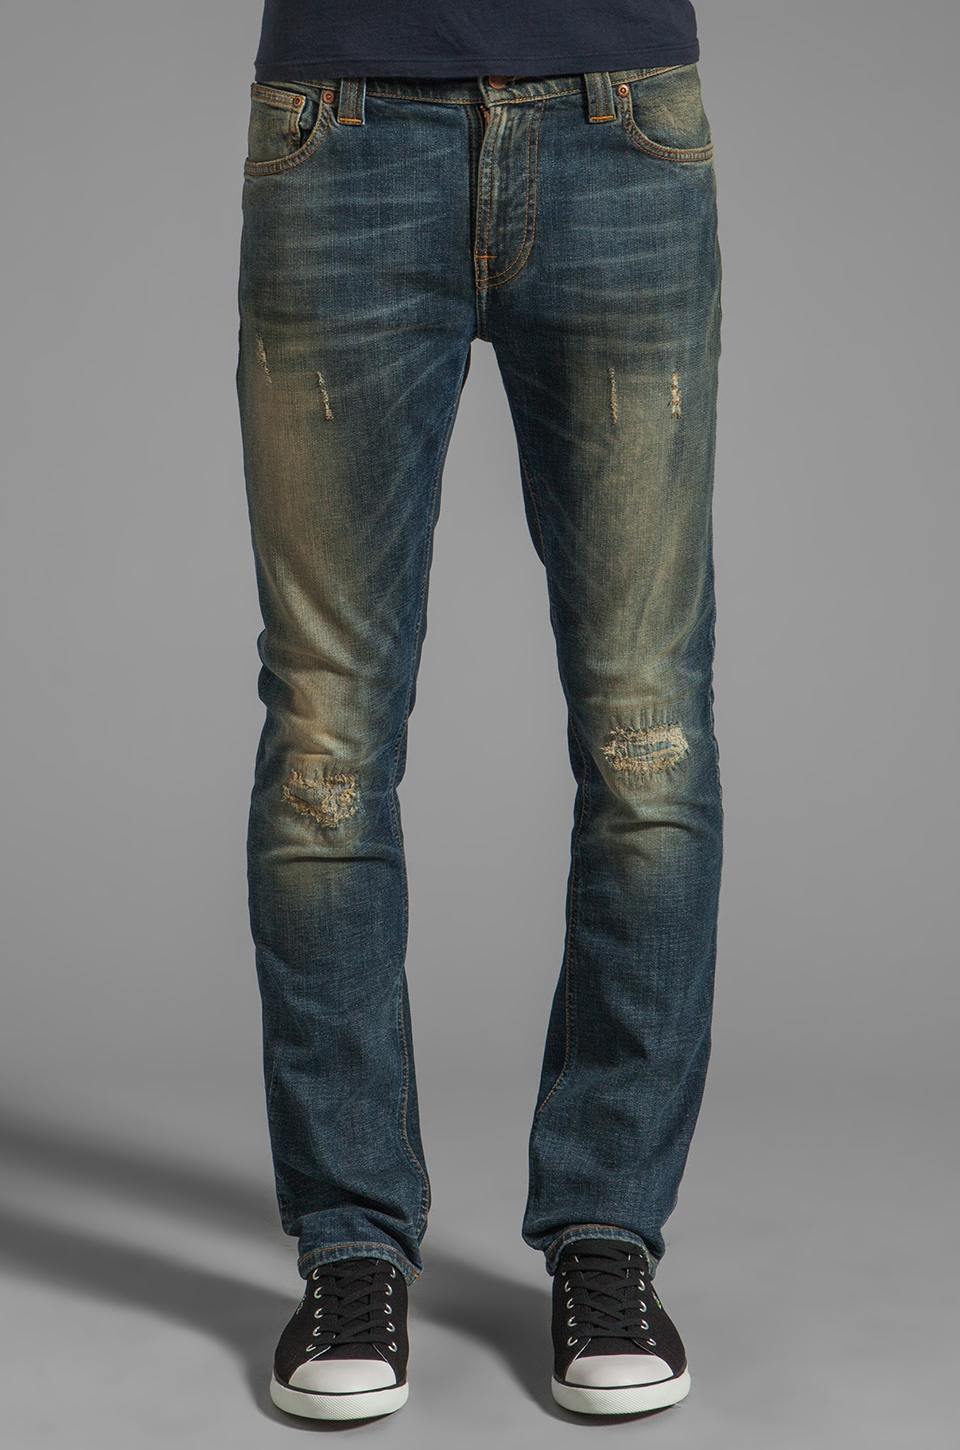 Nudie Jeans Thin Finn en Organic Shawn Replica